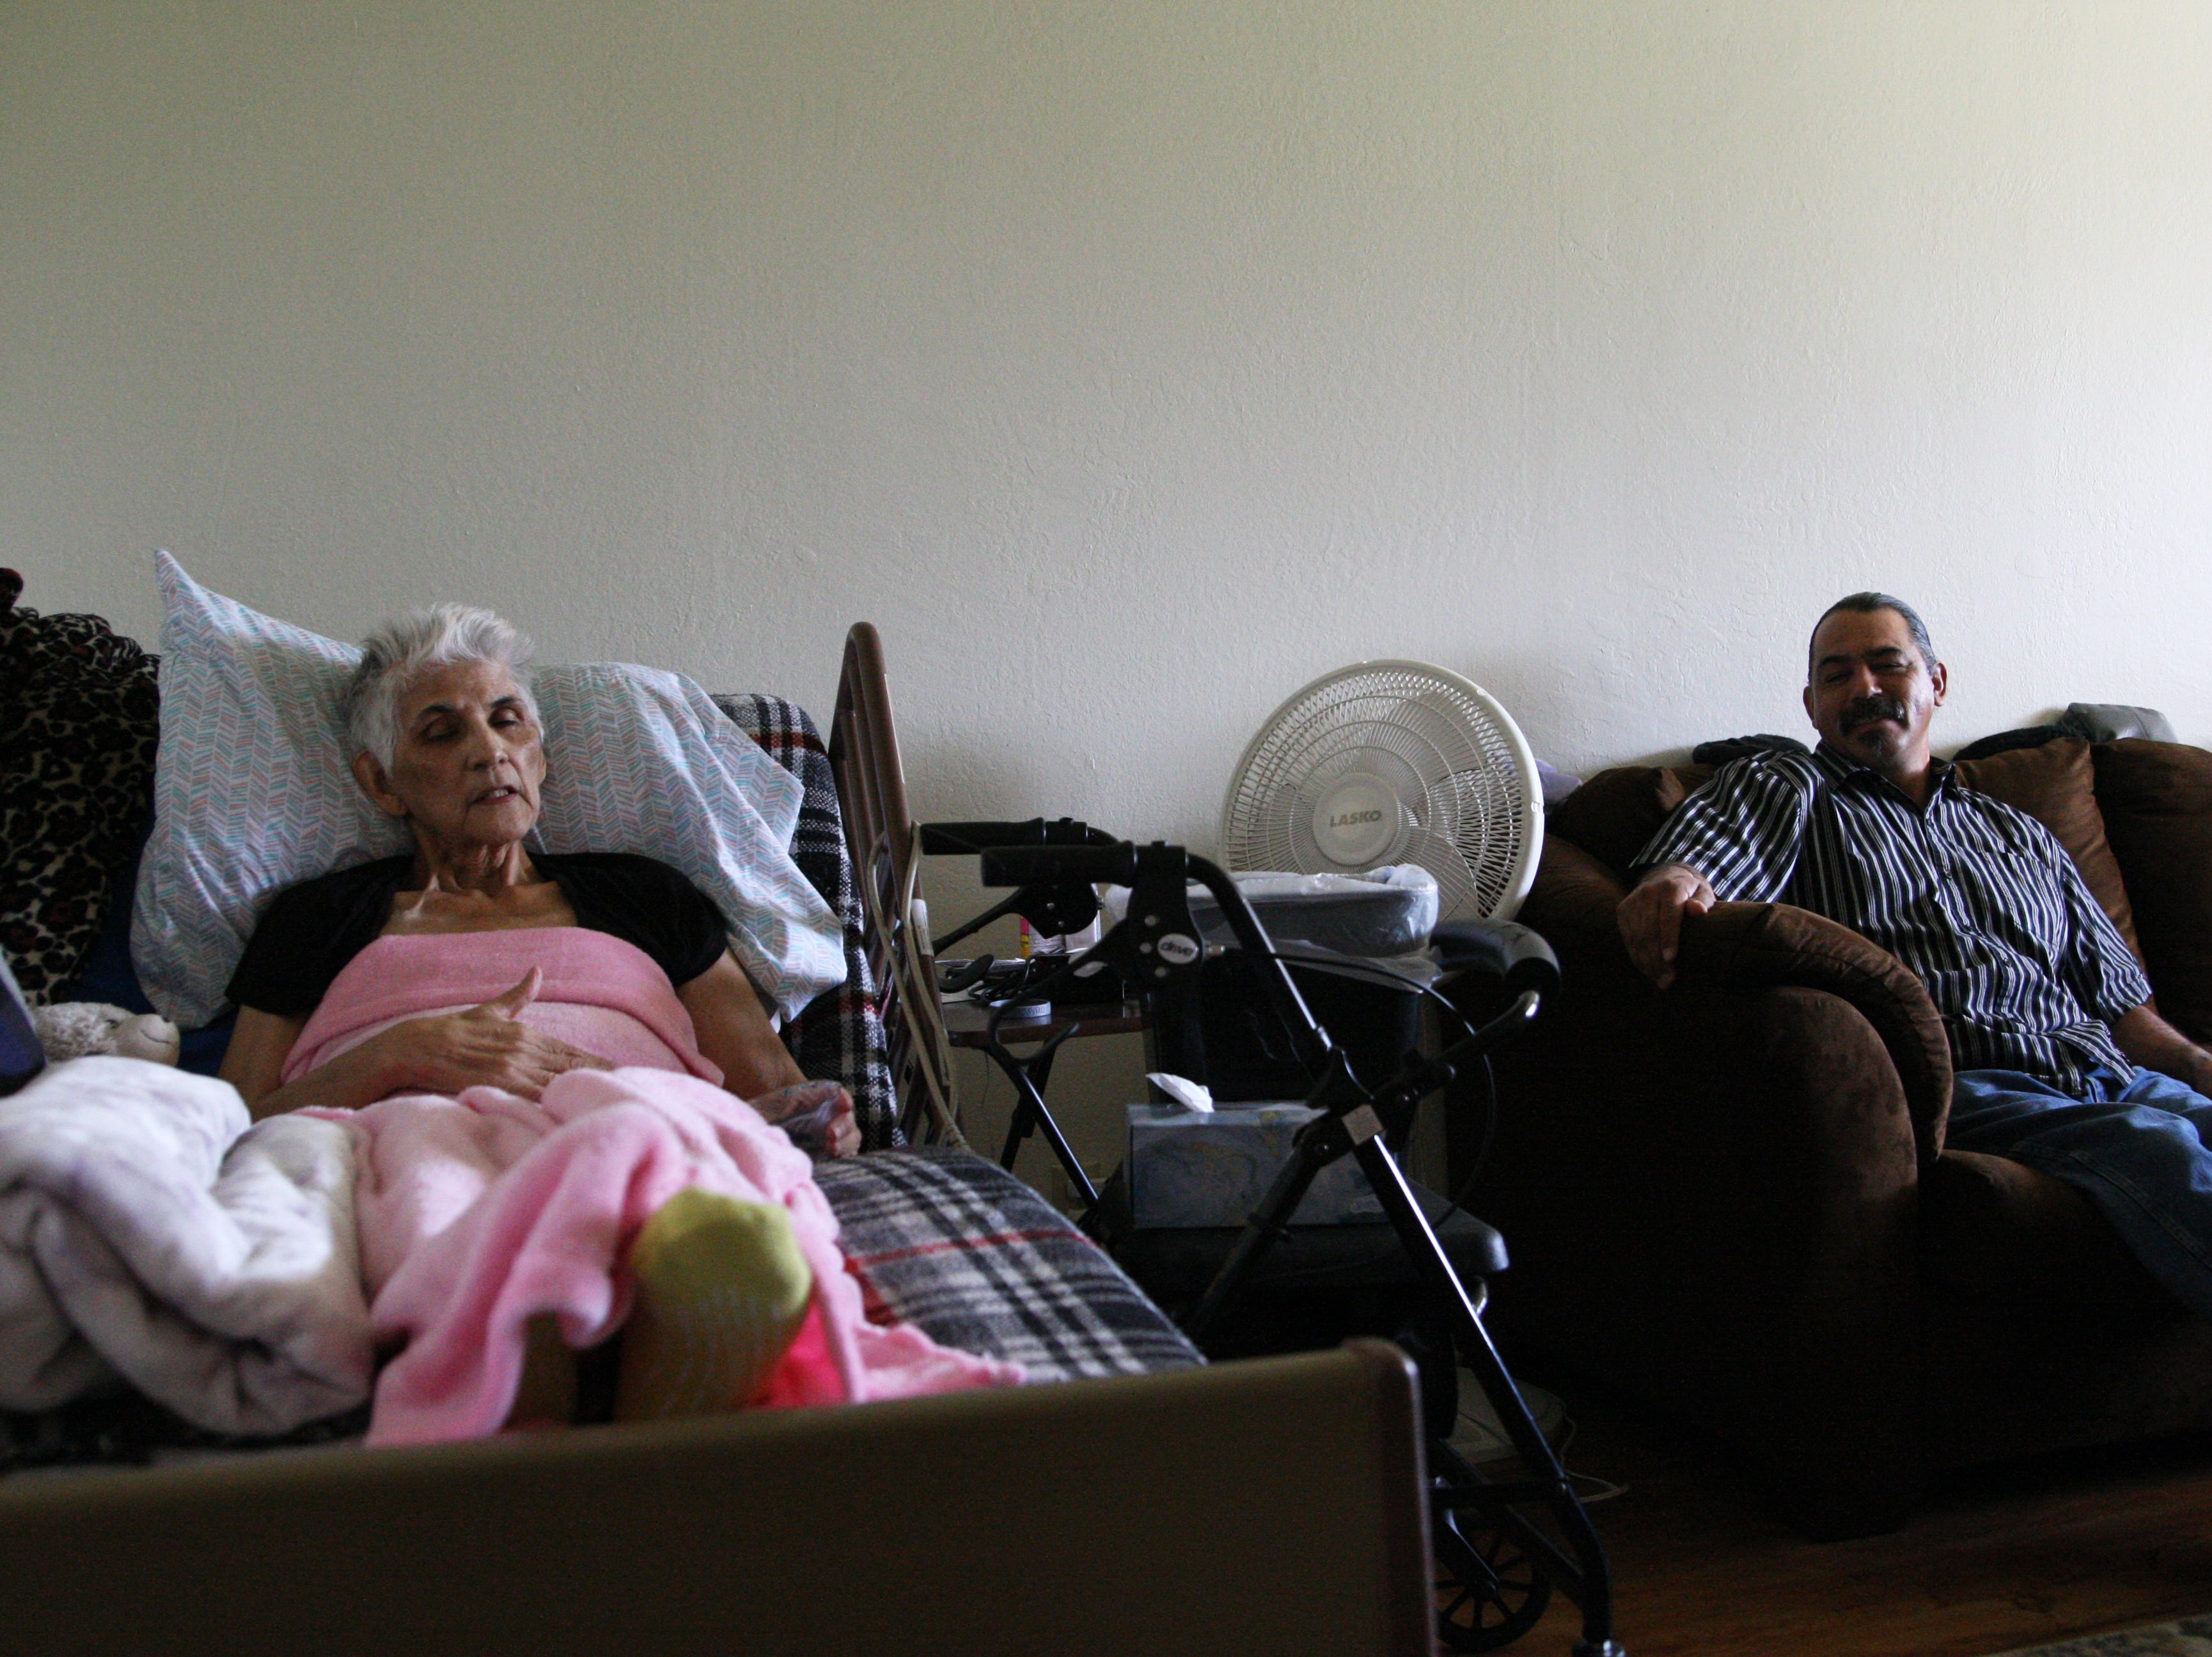 Gloria Torrez rests in her hospital bed in her Salinas home. Her only surviving son, Paul Jr., sits nearby.